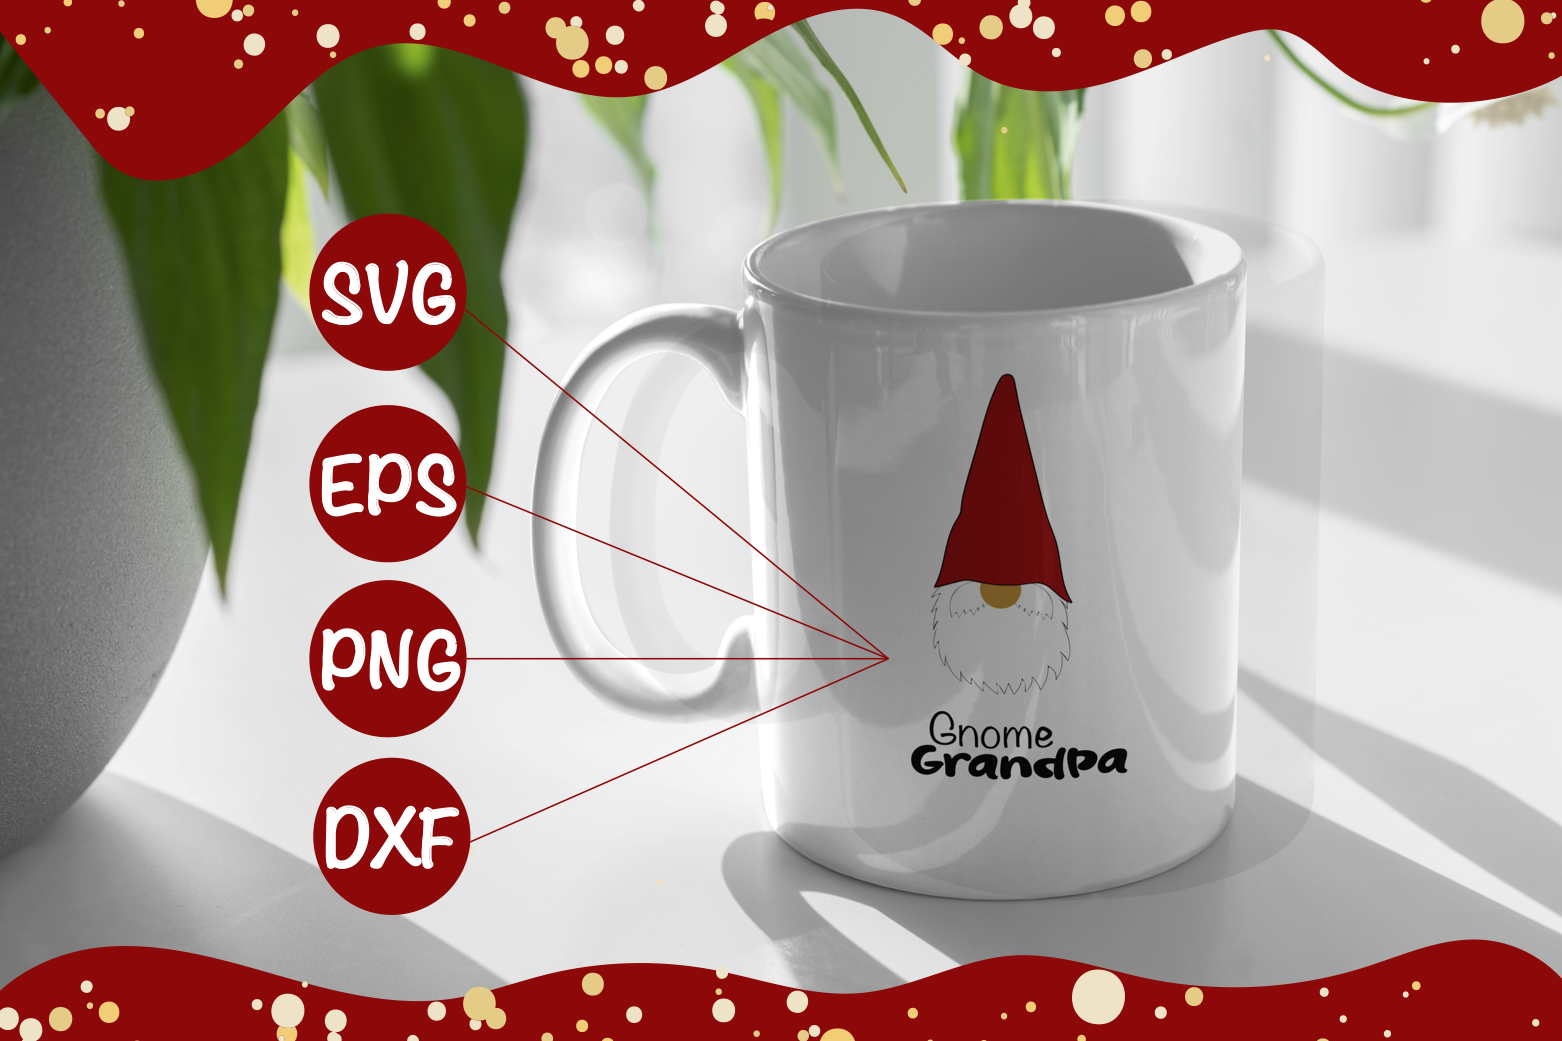 Download Free Gnome Grandpa Svg Eps Png Dxf Graphic By Arpondesign Creative for Cricut Explore, Silhouette and other cutting machines.